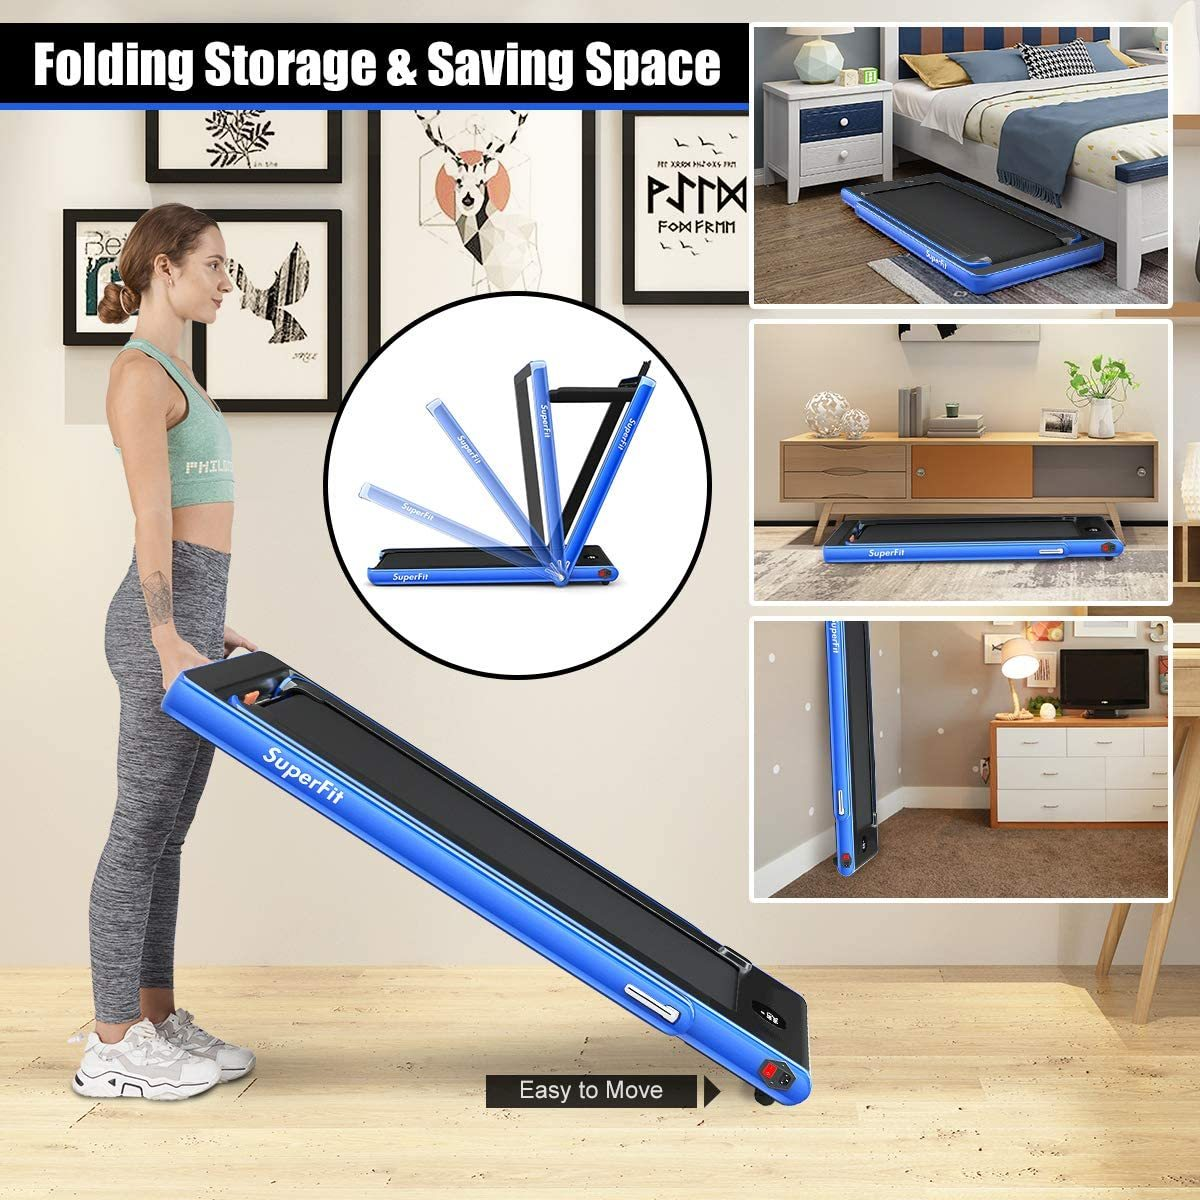 2 in 1 Folding Treadmill with Dual Display, 2.25HP Under Desk Electric Pad Treadmill, Installation-Free, Bluetooth Speaker, Remote Control, Walking Jogging Machine for Home/Office Use